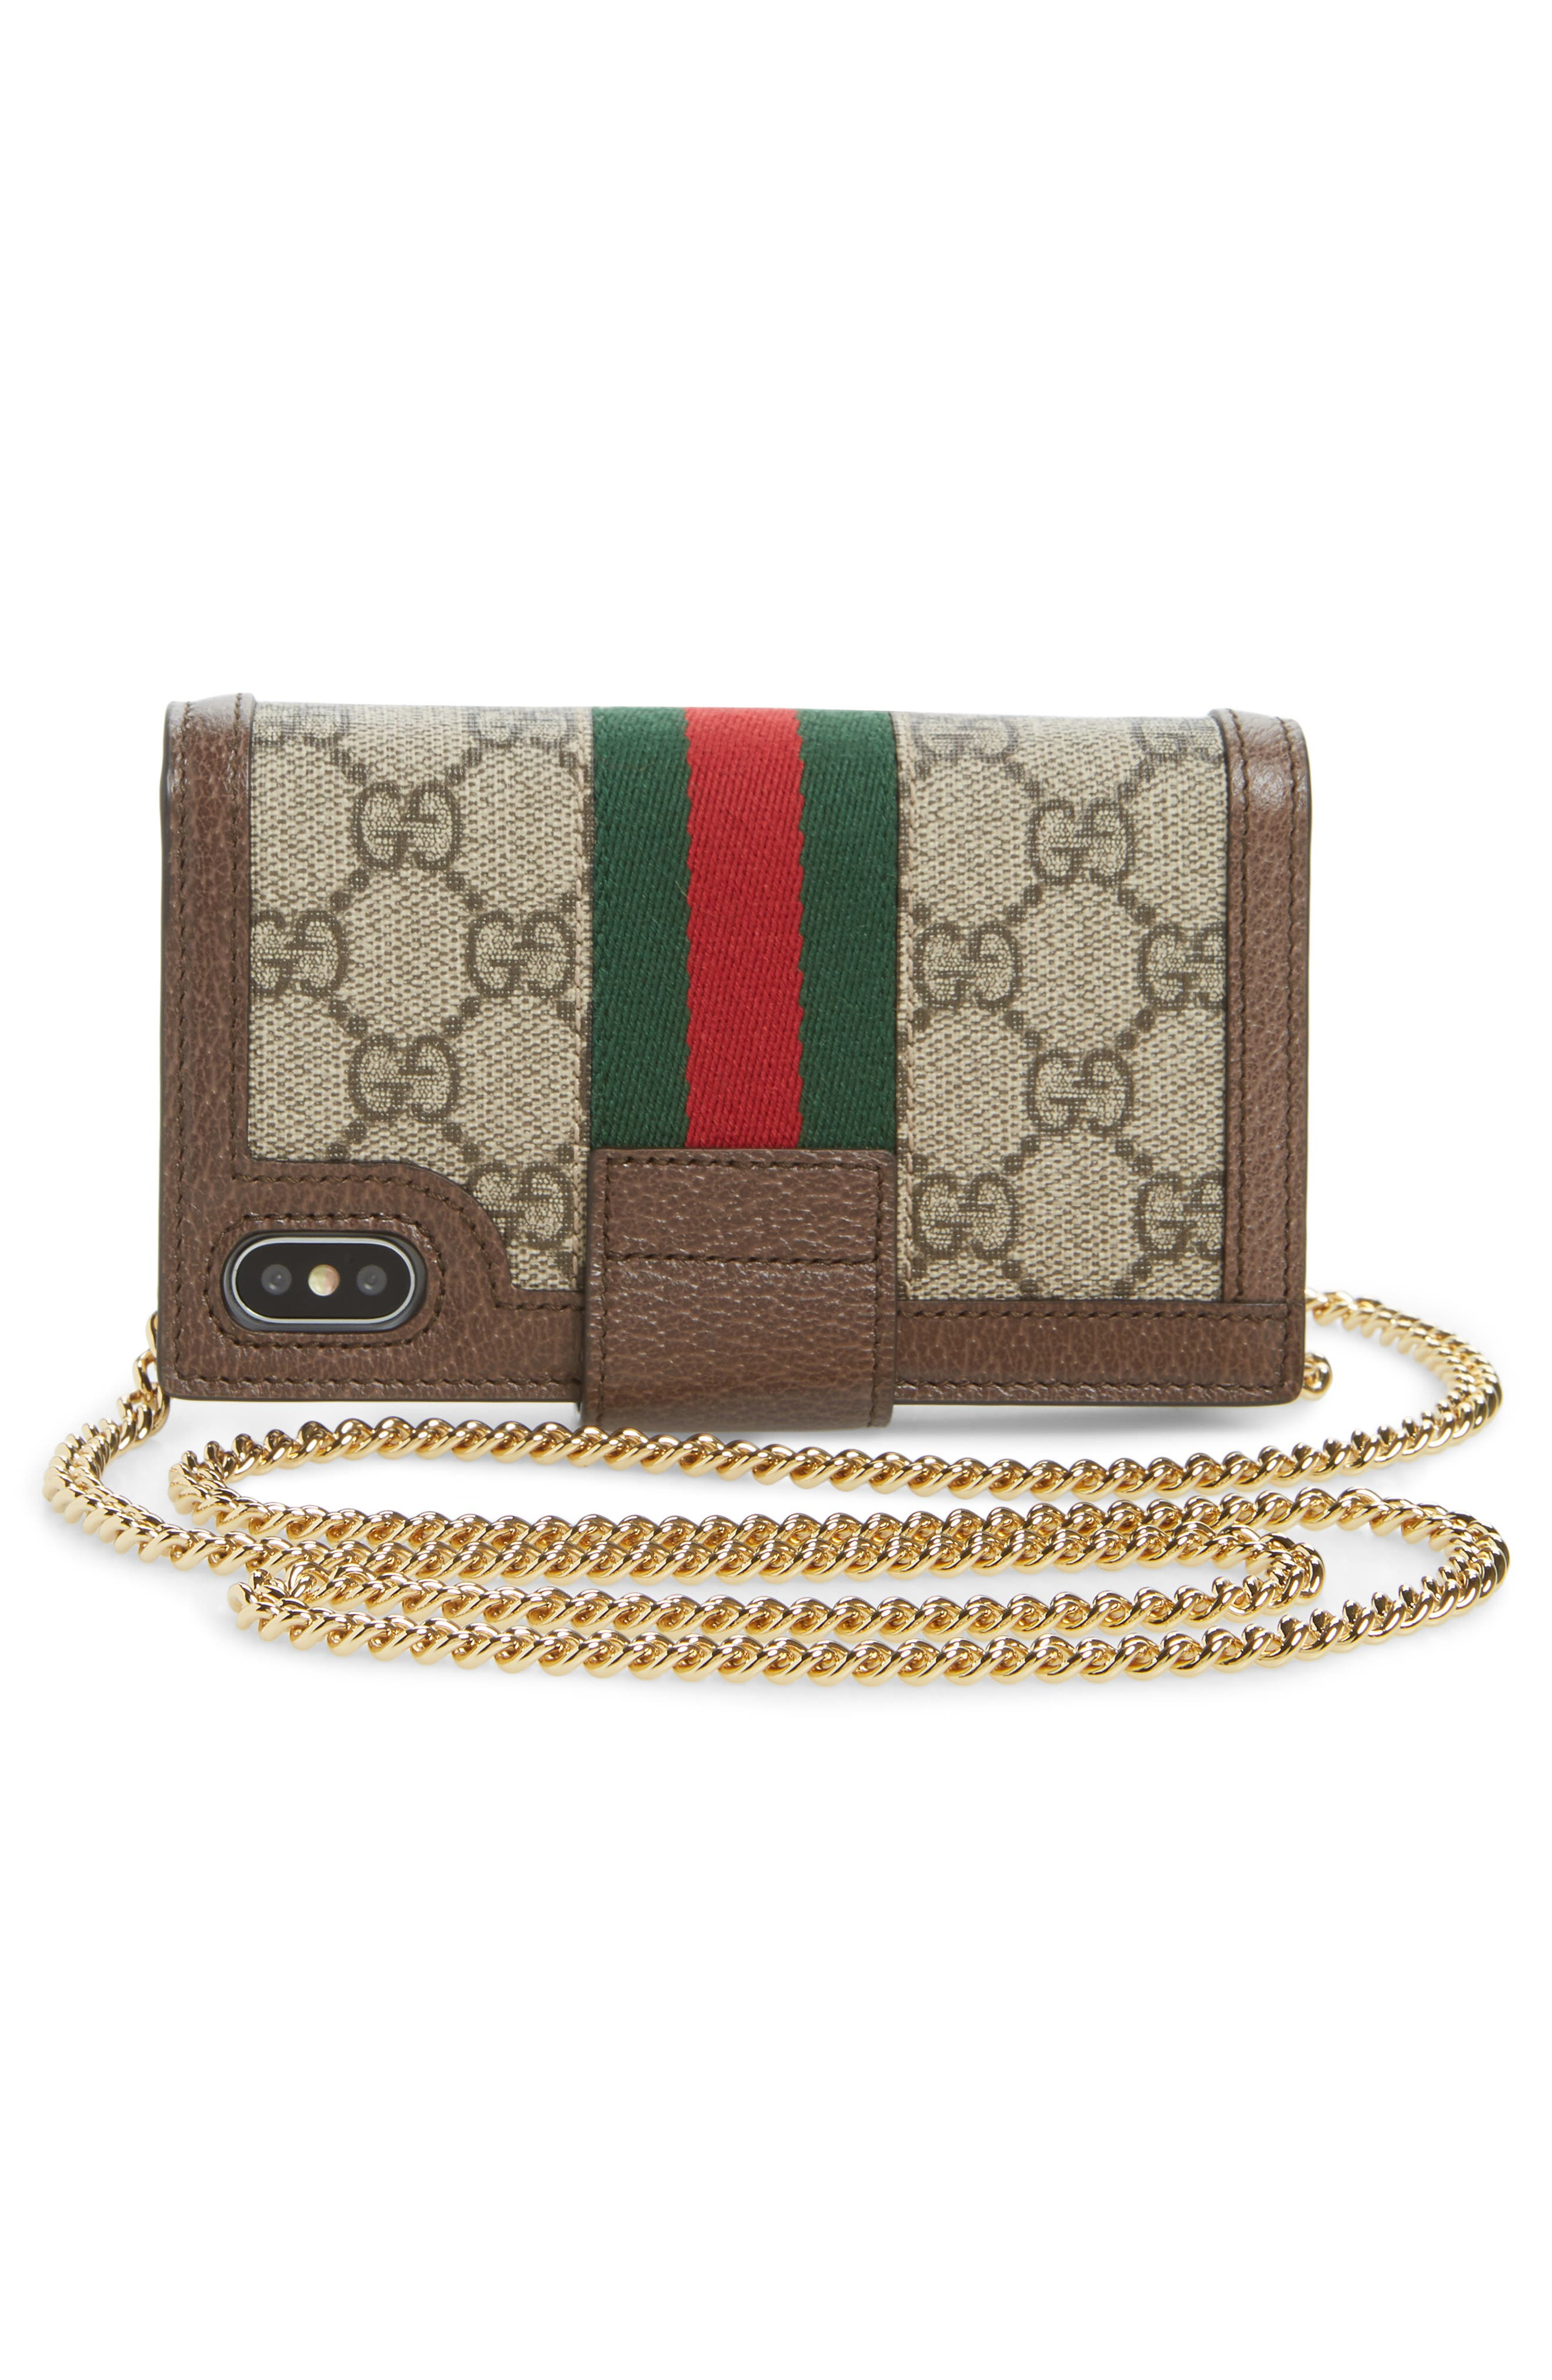 GUCCI, Ophidia iPhone X Folio Crossbody, Alternate thumbnail 3, color, BEIGE EBONY/ NEW ACERO